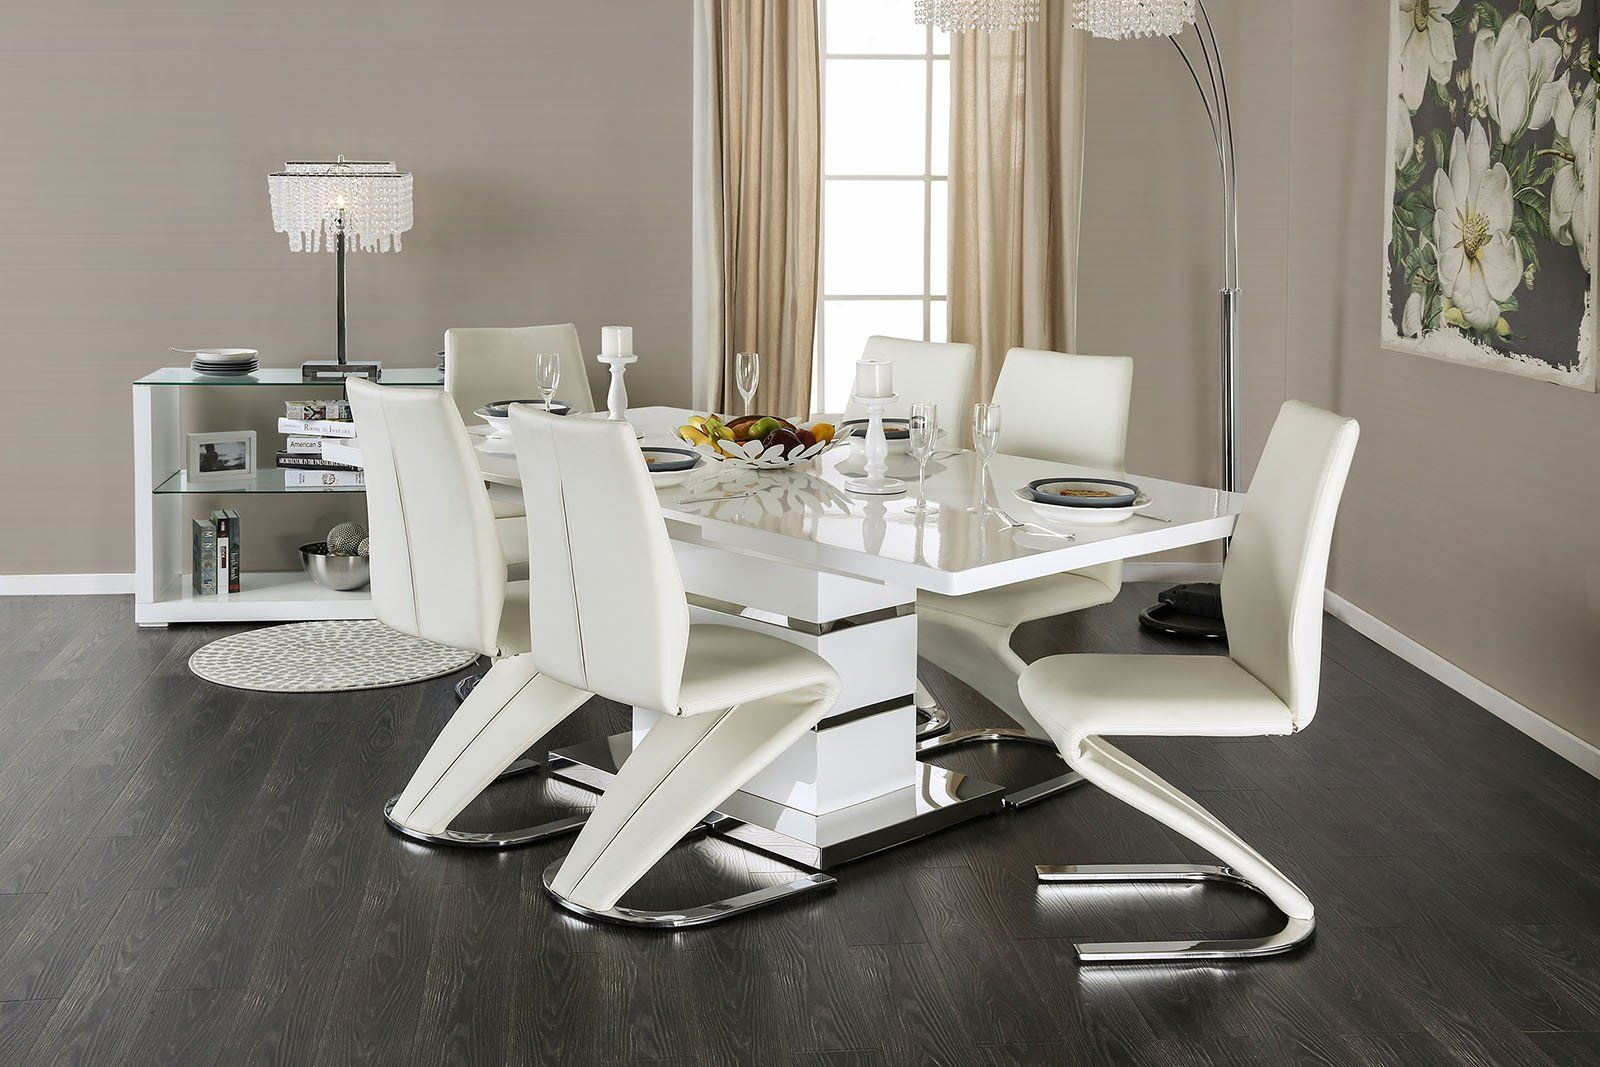 Midvale Contemporary Dining Table Set Dining Room Table Set